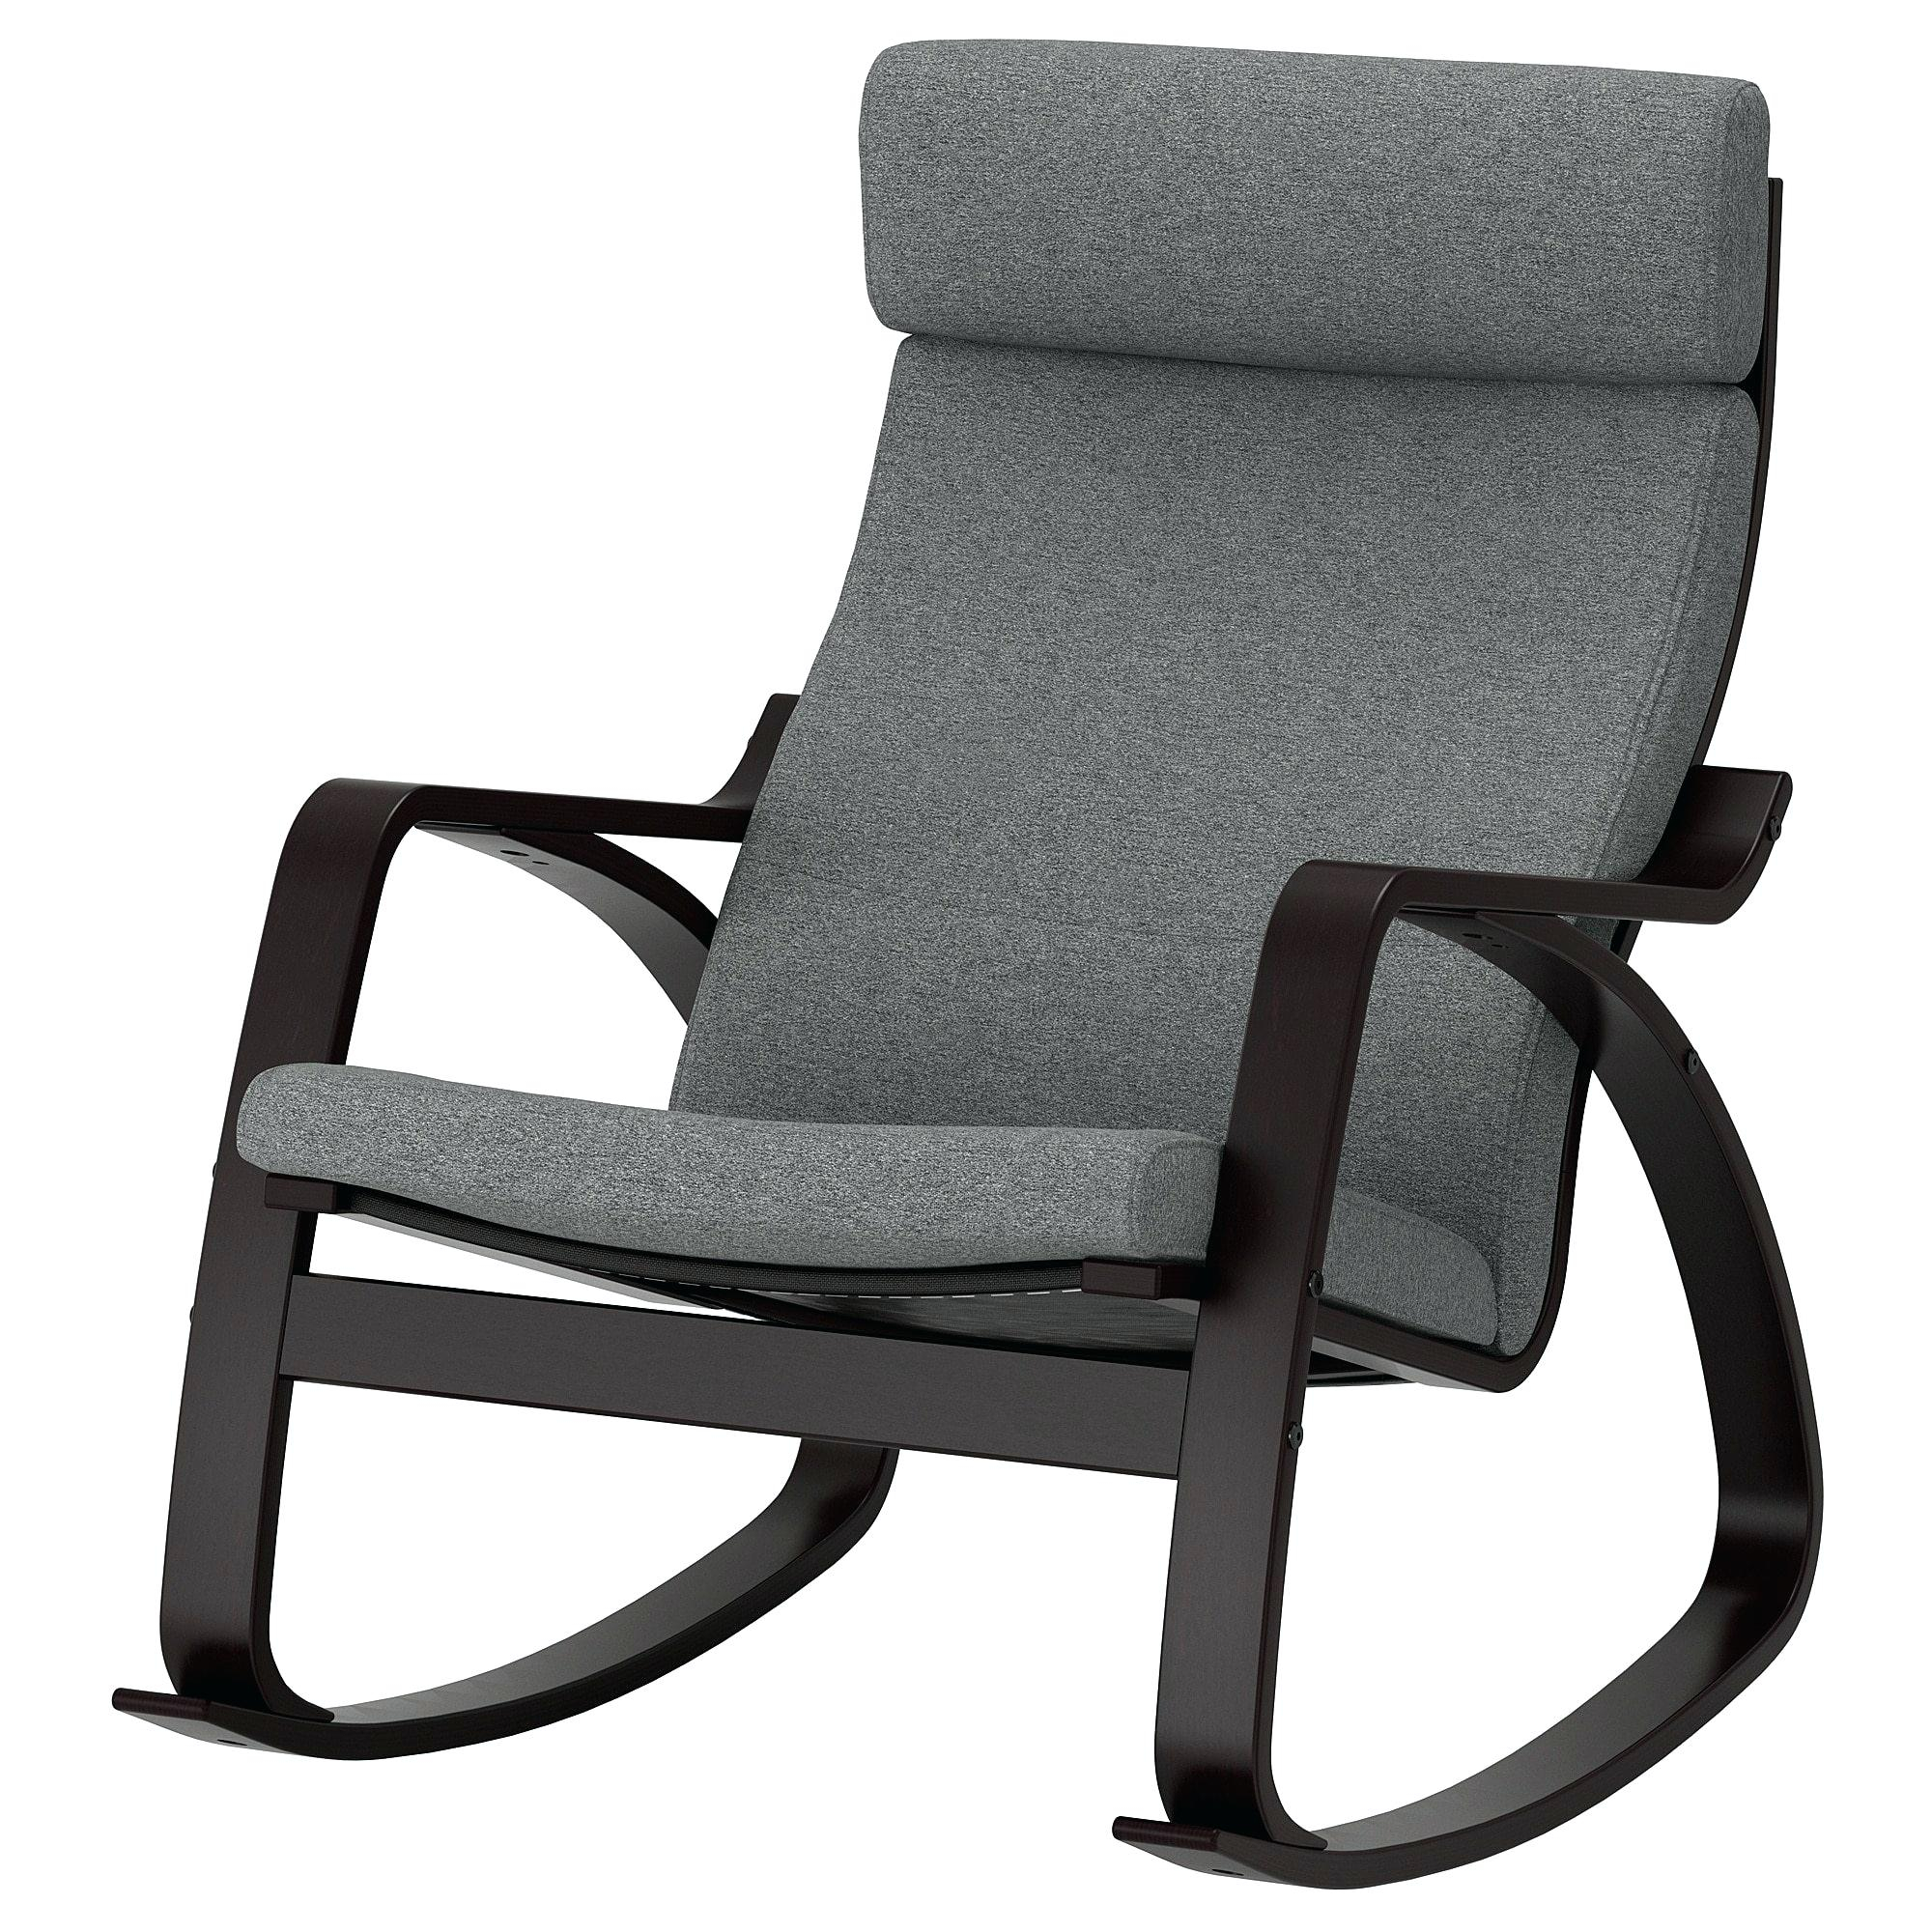 Inspiration about Rocking Chair Images – Cctvsales.co In Faux Leather Upholstered Wooden Rocking Chairs With Looped Arms, Brown (#16 of 20)